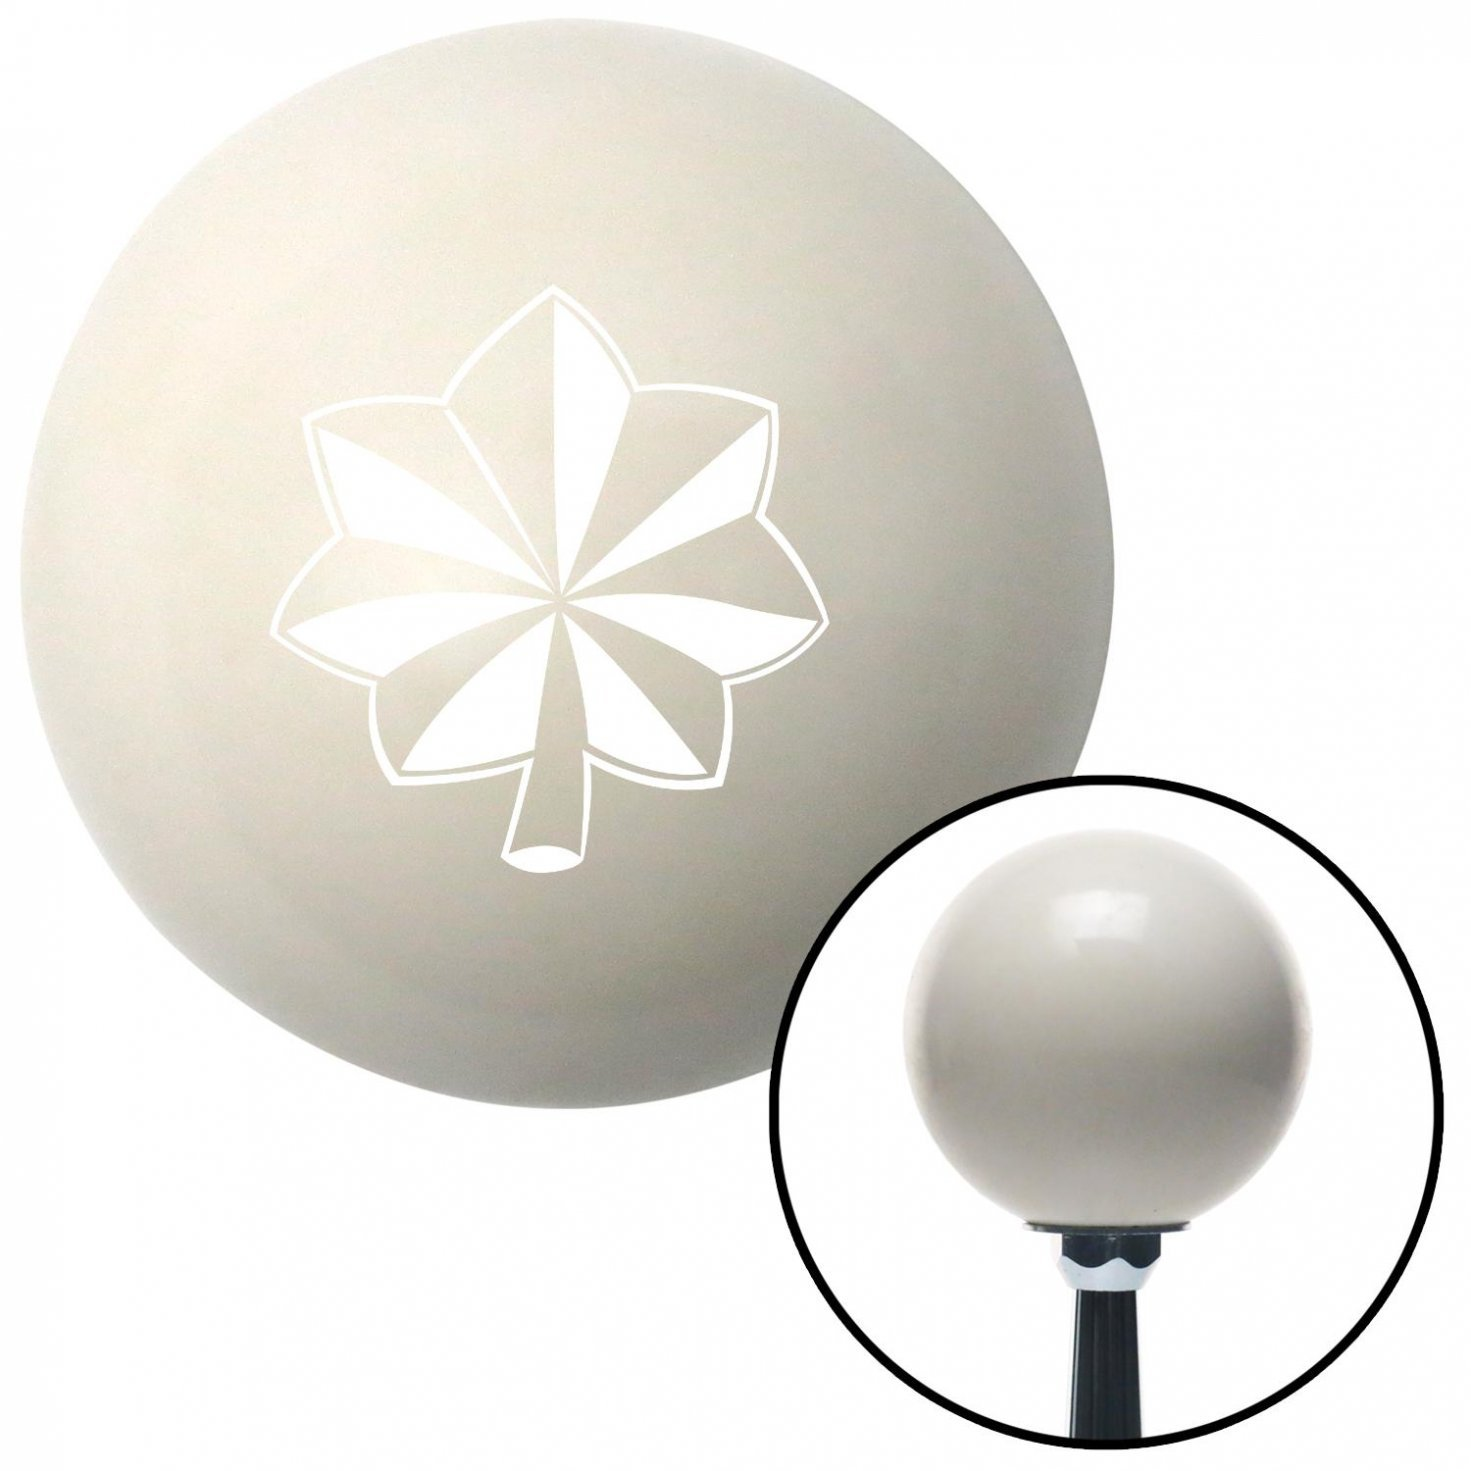 American Shifter 31967 Ivory Shift Knob with 16mm x 1.5 Insert White Officer 04 - Major and Lt. Colonel